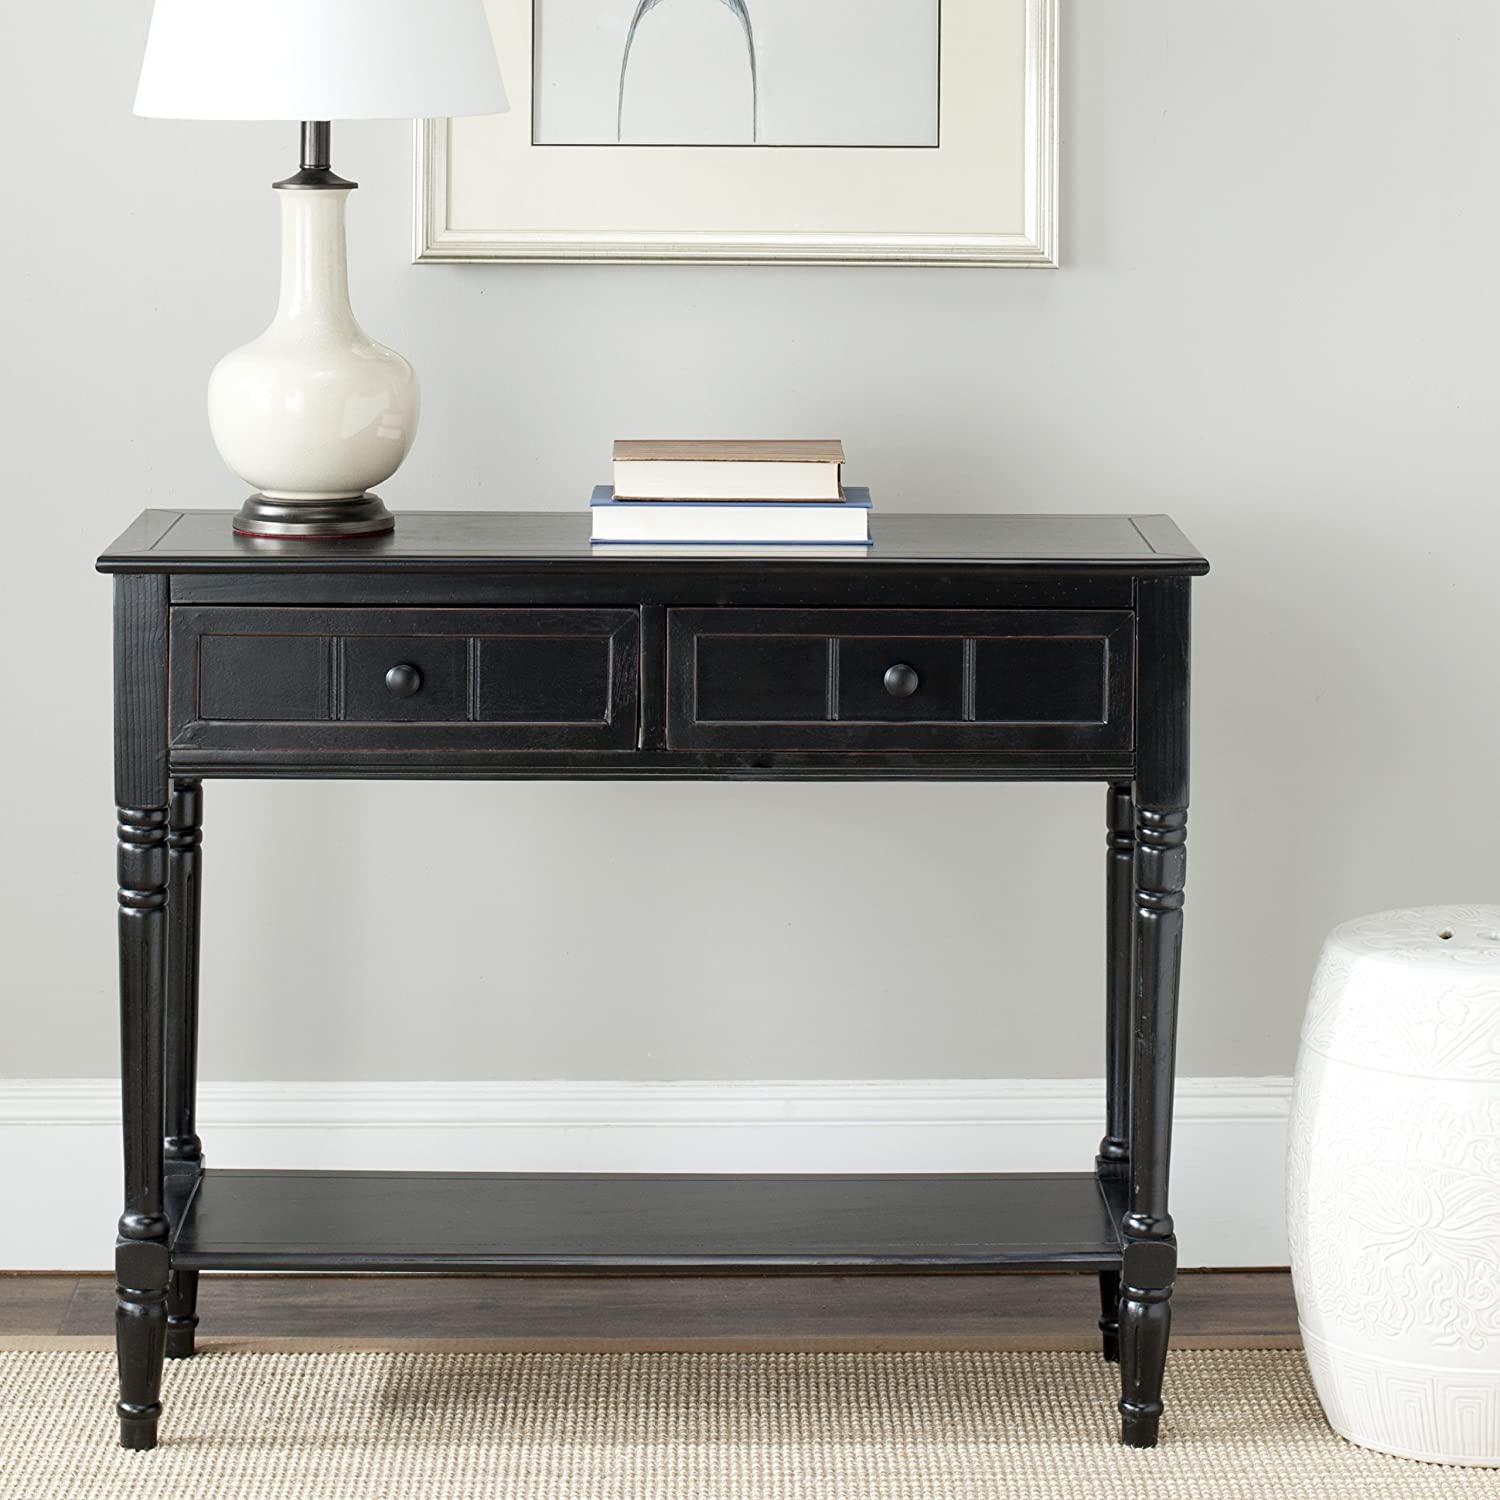 Amazon safavieh american home collection console table amazon safavieh american home collection console table distressed black kitchen dining geotapseo Gallery